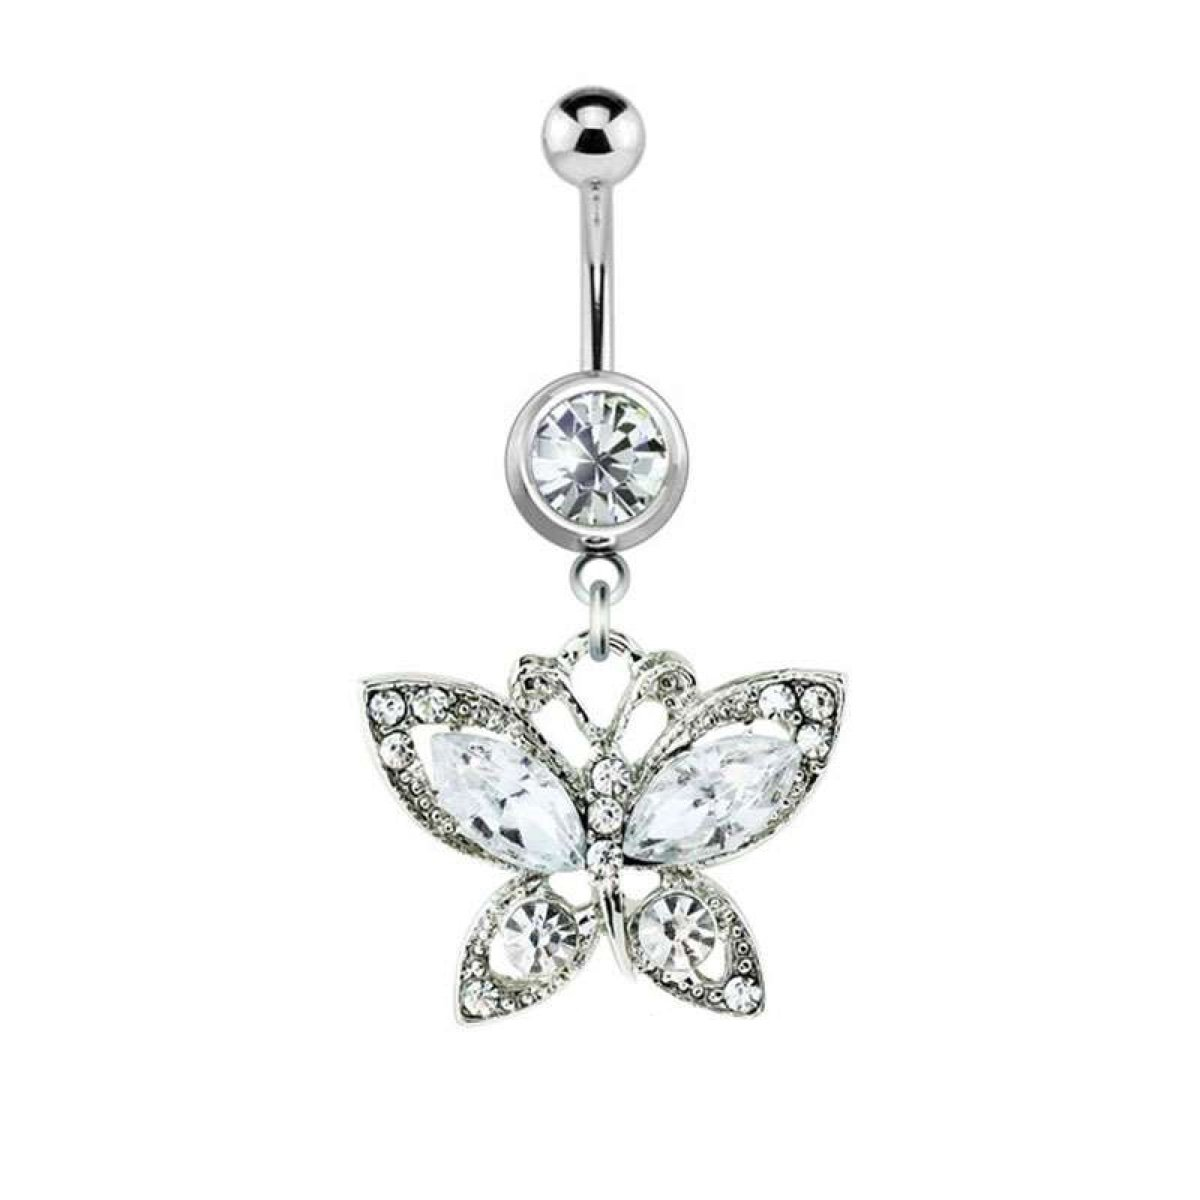 Sparkling Owl on the Moon 316L Surgical Steel Navel Ring